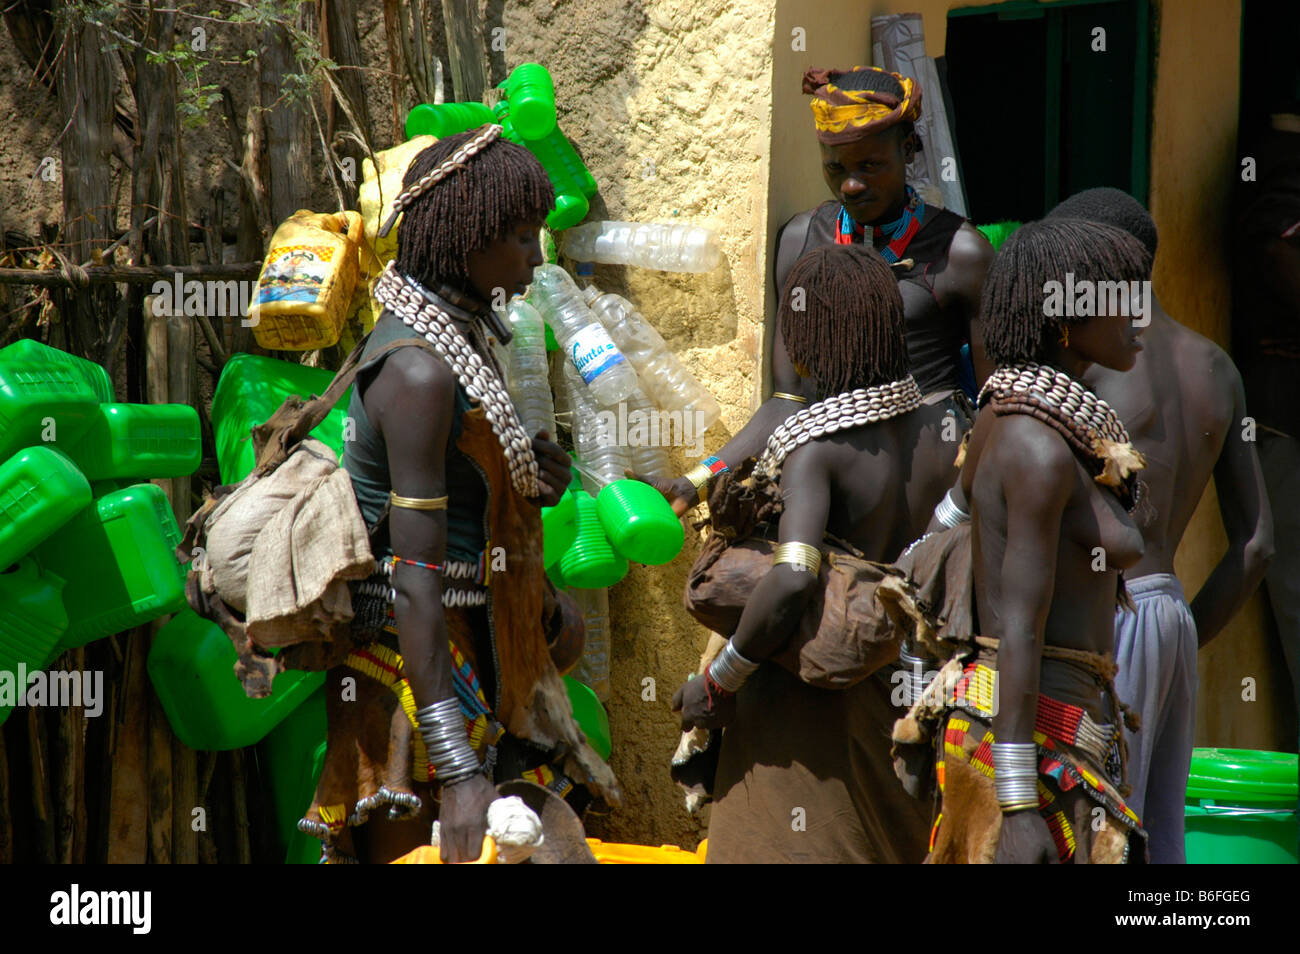 Black skinned Hamar people with white kauri mussel necklaces in front of green plastic canisters, market of Dimeka, - Stock Image